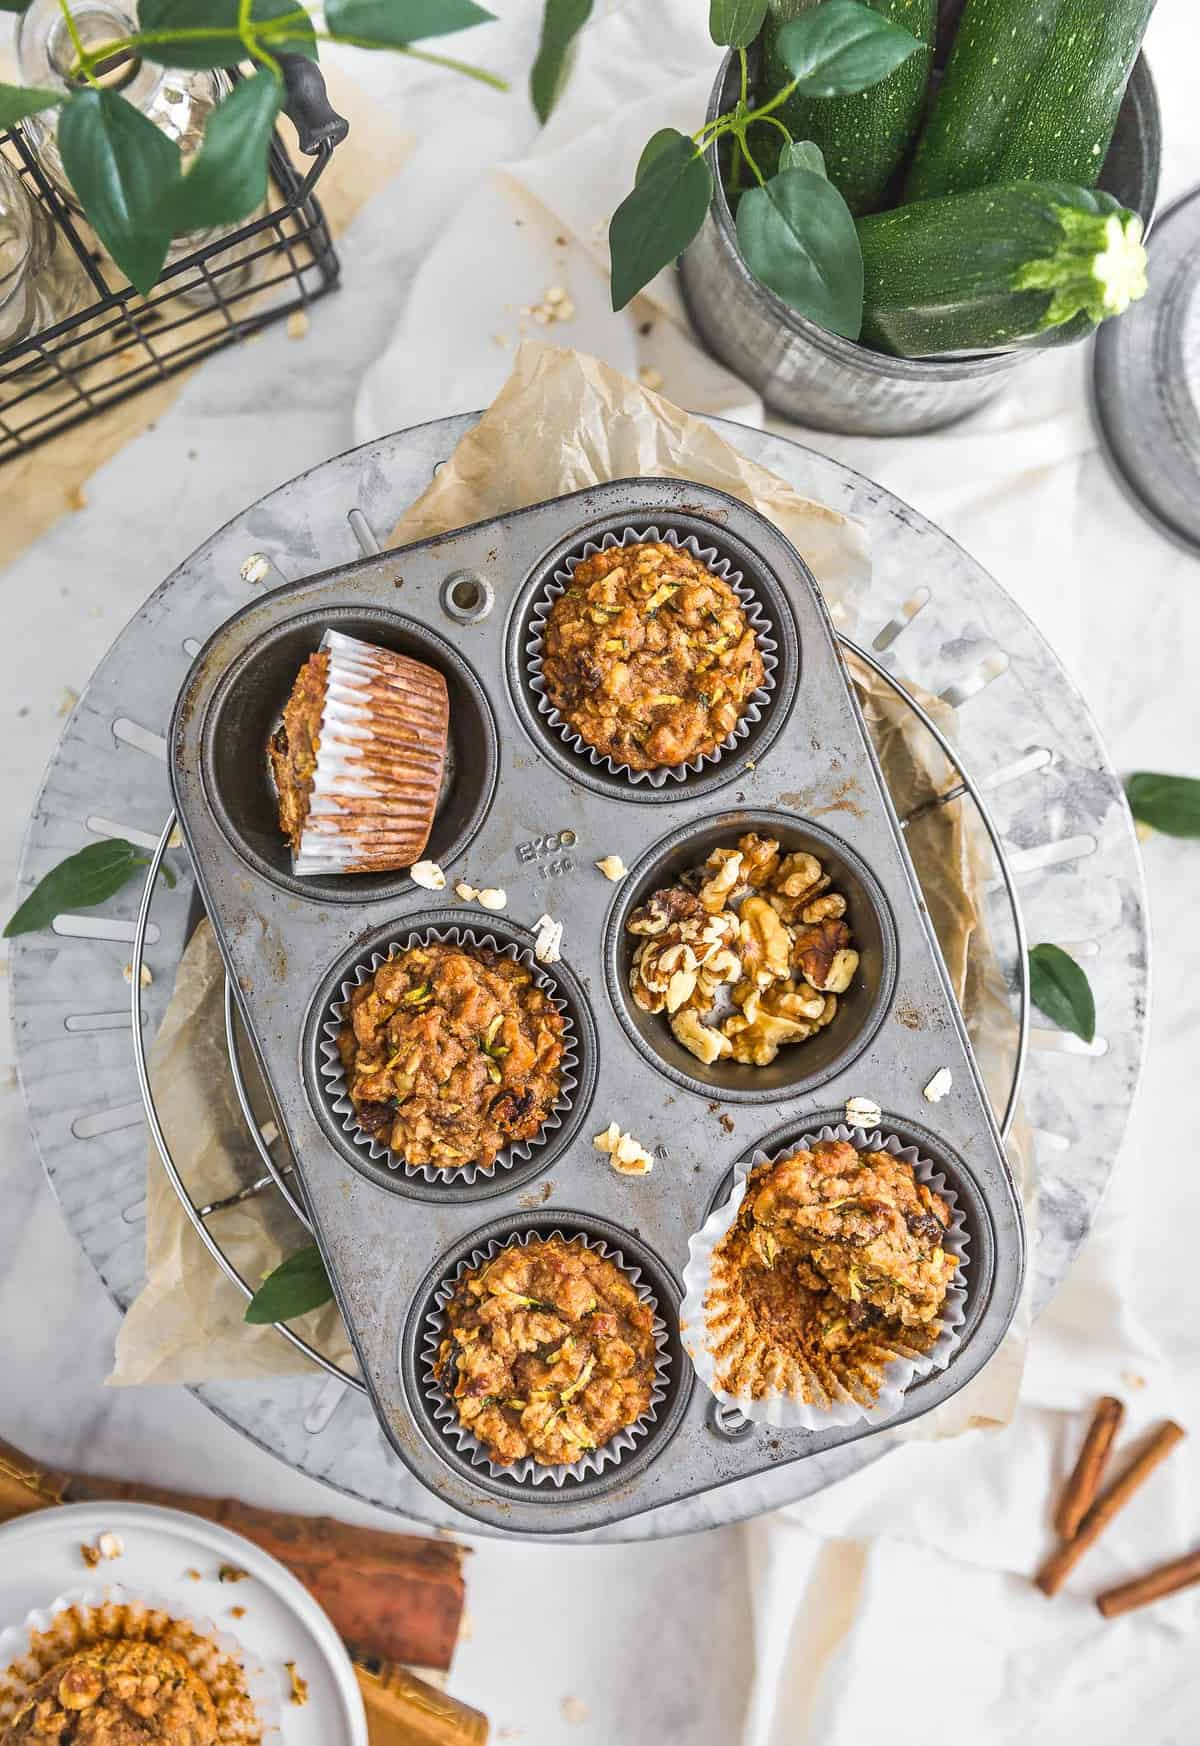 Vegan Zucchini Muffins, zucchini muffins, vegan dessert, muffins, zucchini, dessert, plant based dessert, plant based, vegan, vegetarian, whole food plant based, gluten free, recipe, wfpb, healthy, healthy vegan, oil free, no refined sugar, no oil, refined sugar free, dairy free, sweets, healthy recipe, vegan meal